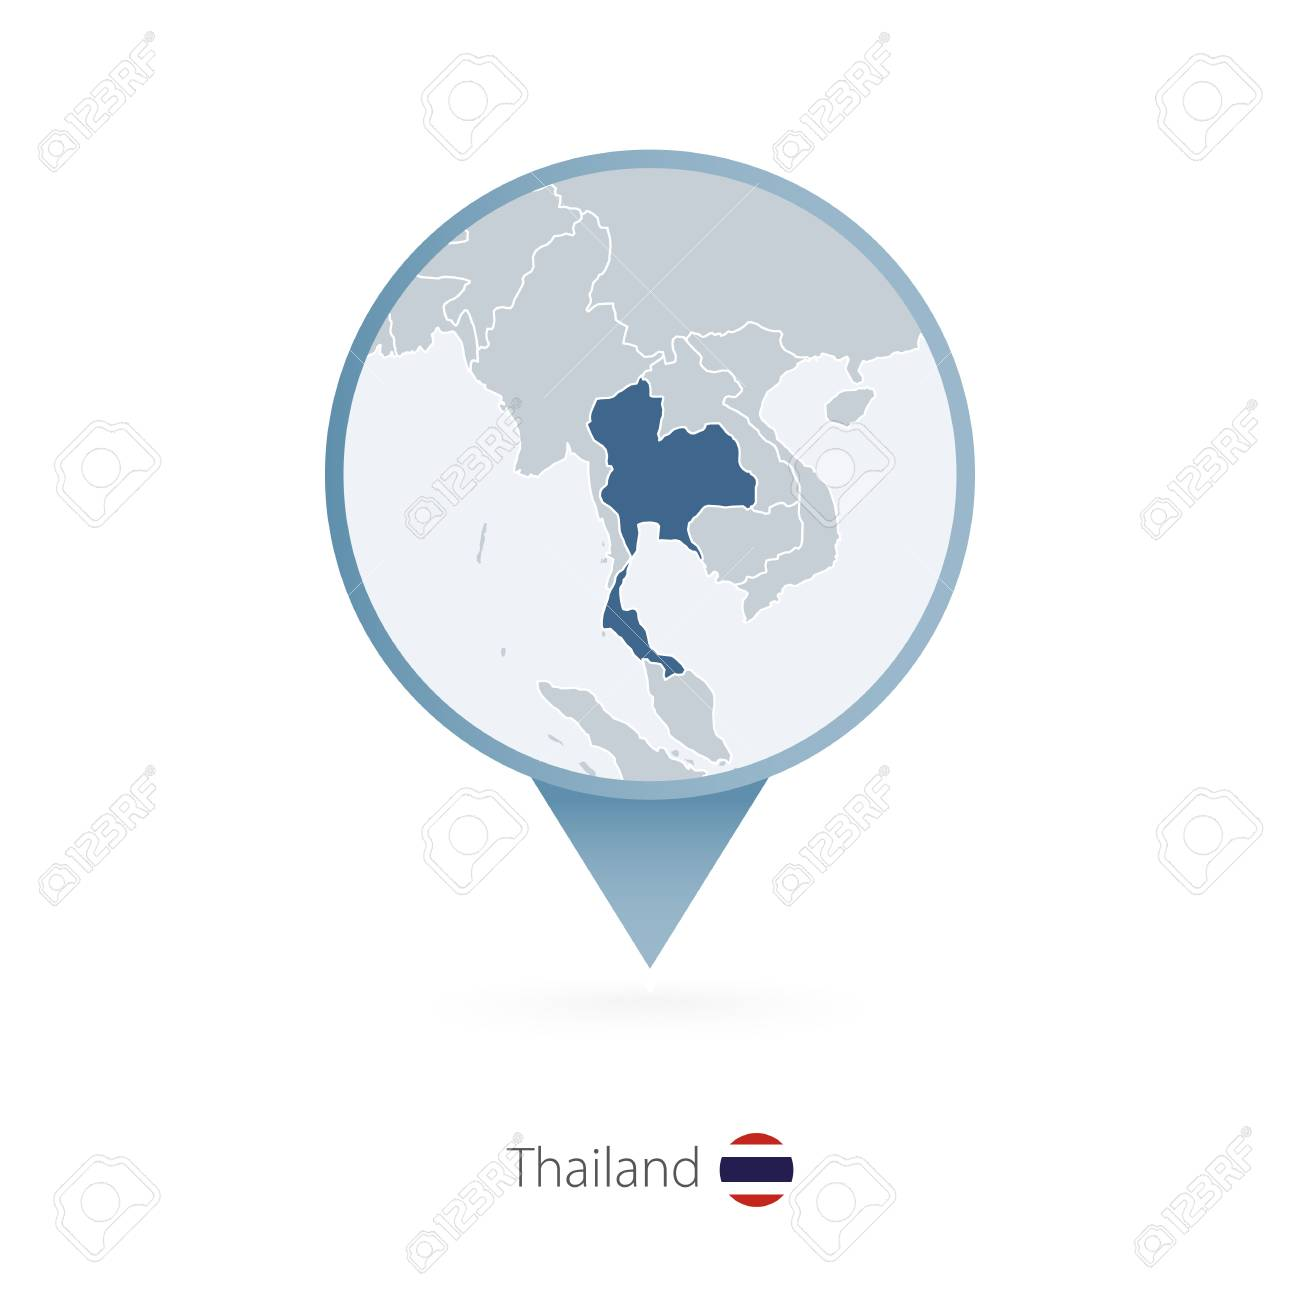 Map Pin With Detailed Map Of Thailand And Neighboring Countries ...